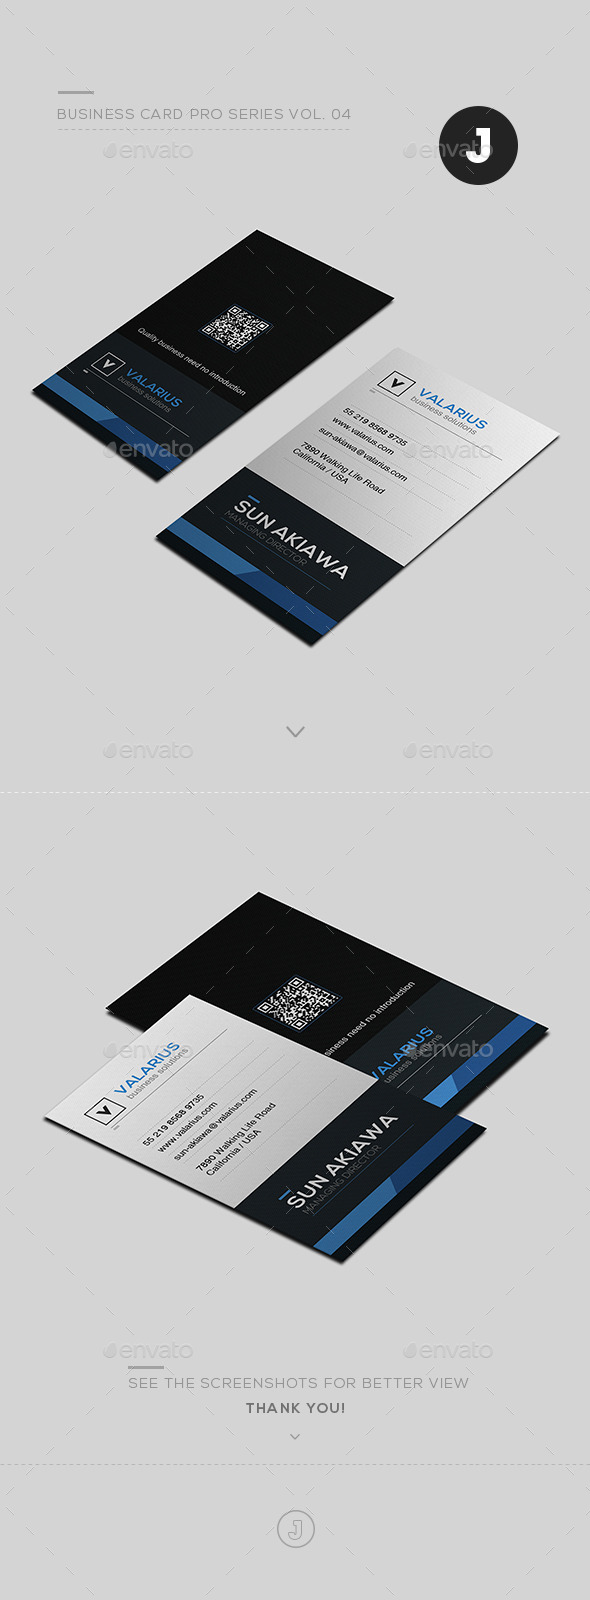 Business Card Pro Series Vol 04